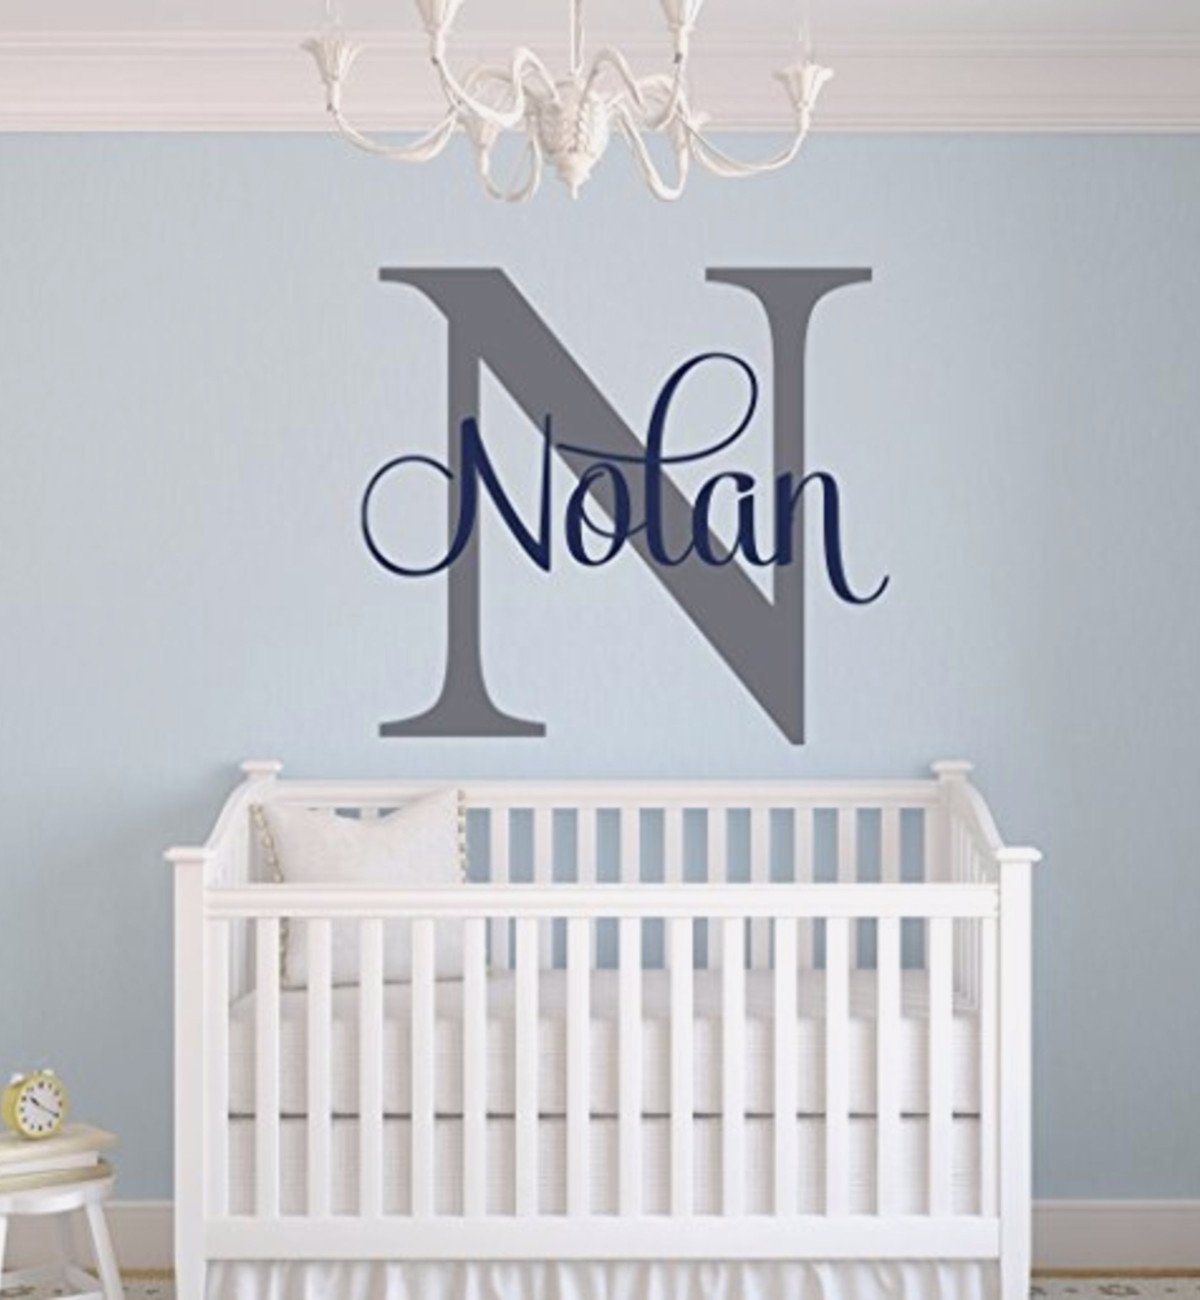 Baby Room Wall Decor Ideas Best Of Unique Baby Boy Nursery themes and Decor Ideas Involvery Munity Blog